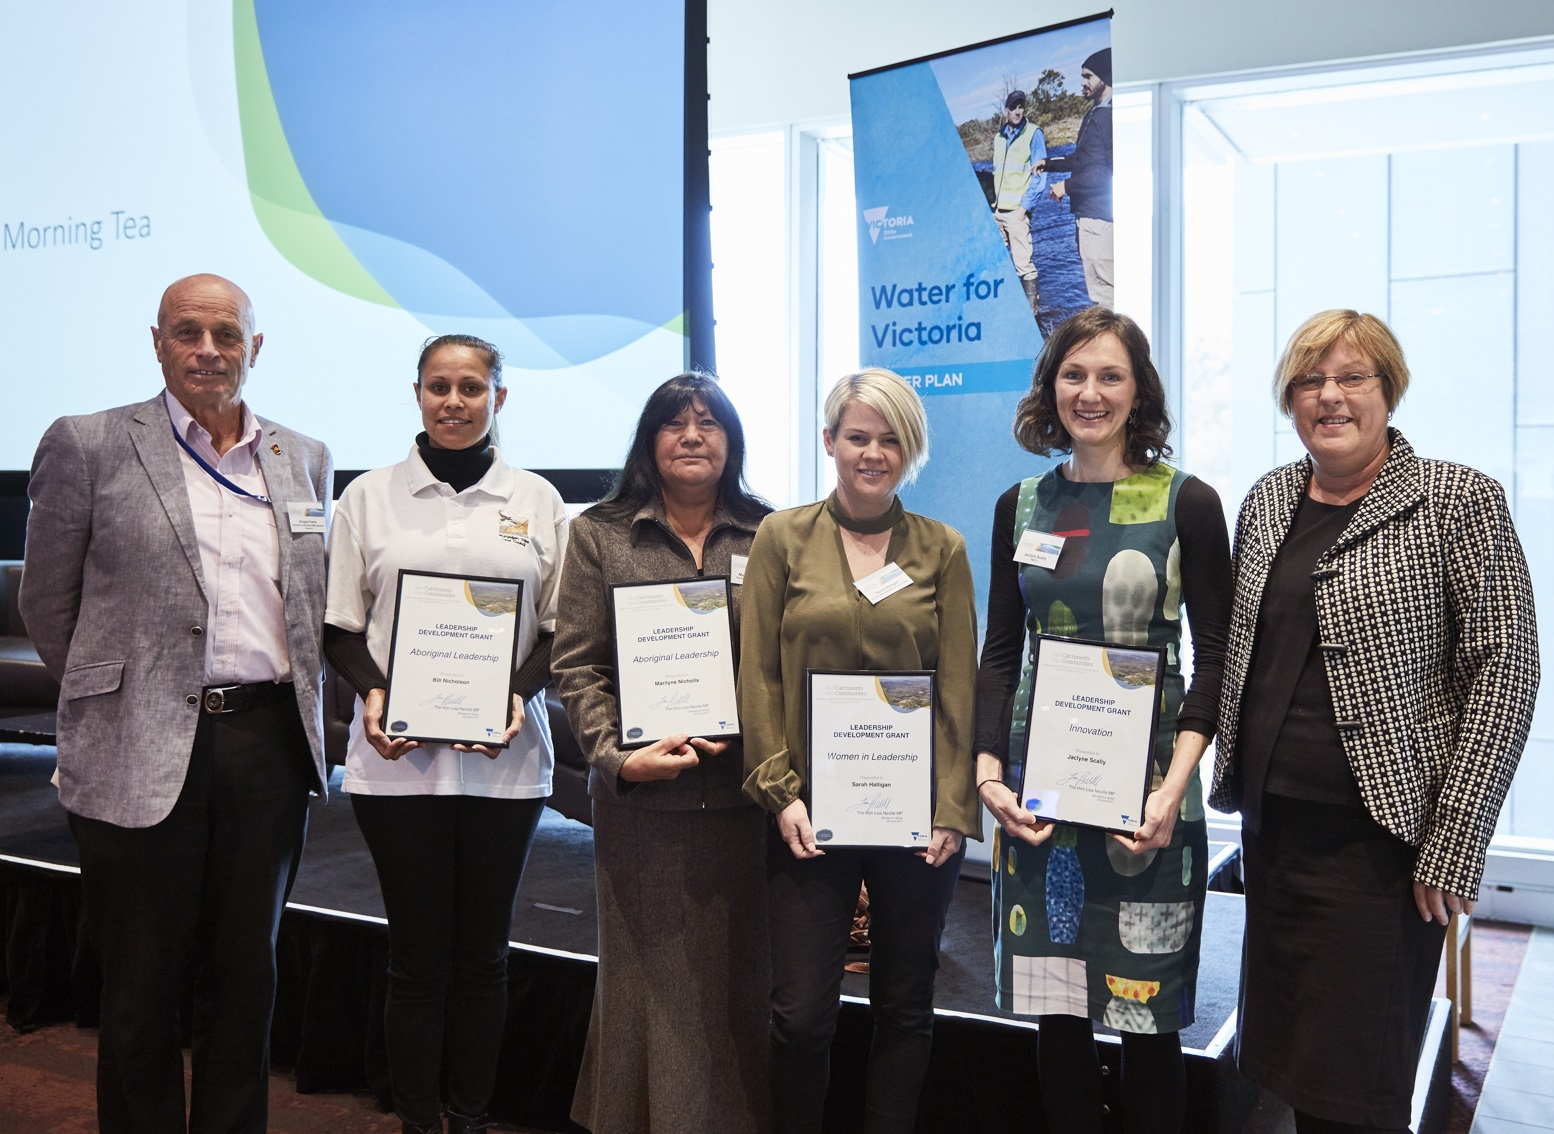 Minister for Water, Lisa Neville standing with the Chair of the Victorian Catchment Management Council, Angus Hume congratulate the 2017 OCOC grant recipients: (L-R) Tarlina Gardiner accepting on behalf of Bill Nicholson, Marilyne Nicholls, Sarah Halligan and Jaclyne Scally.